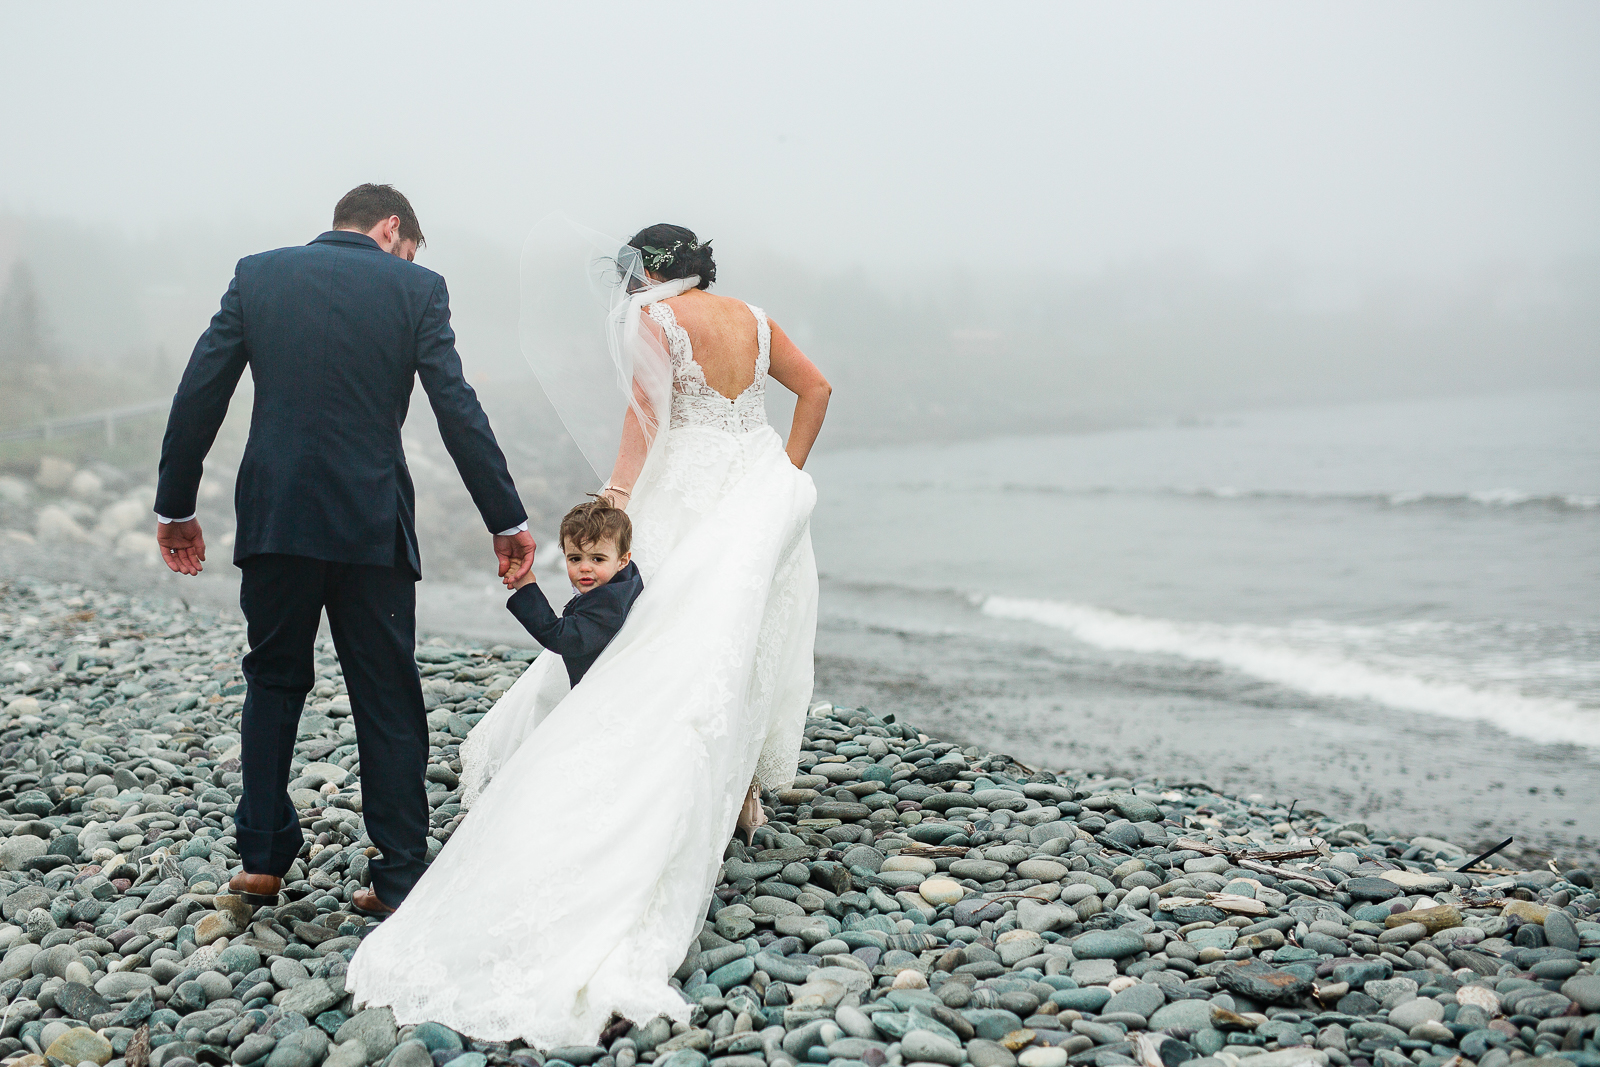 witless-bay-wedding-photographer-86.jpg